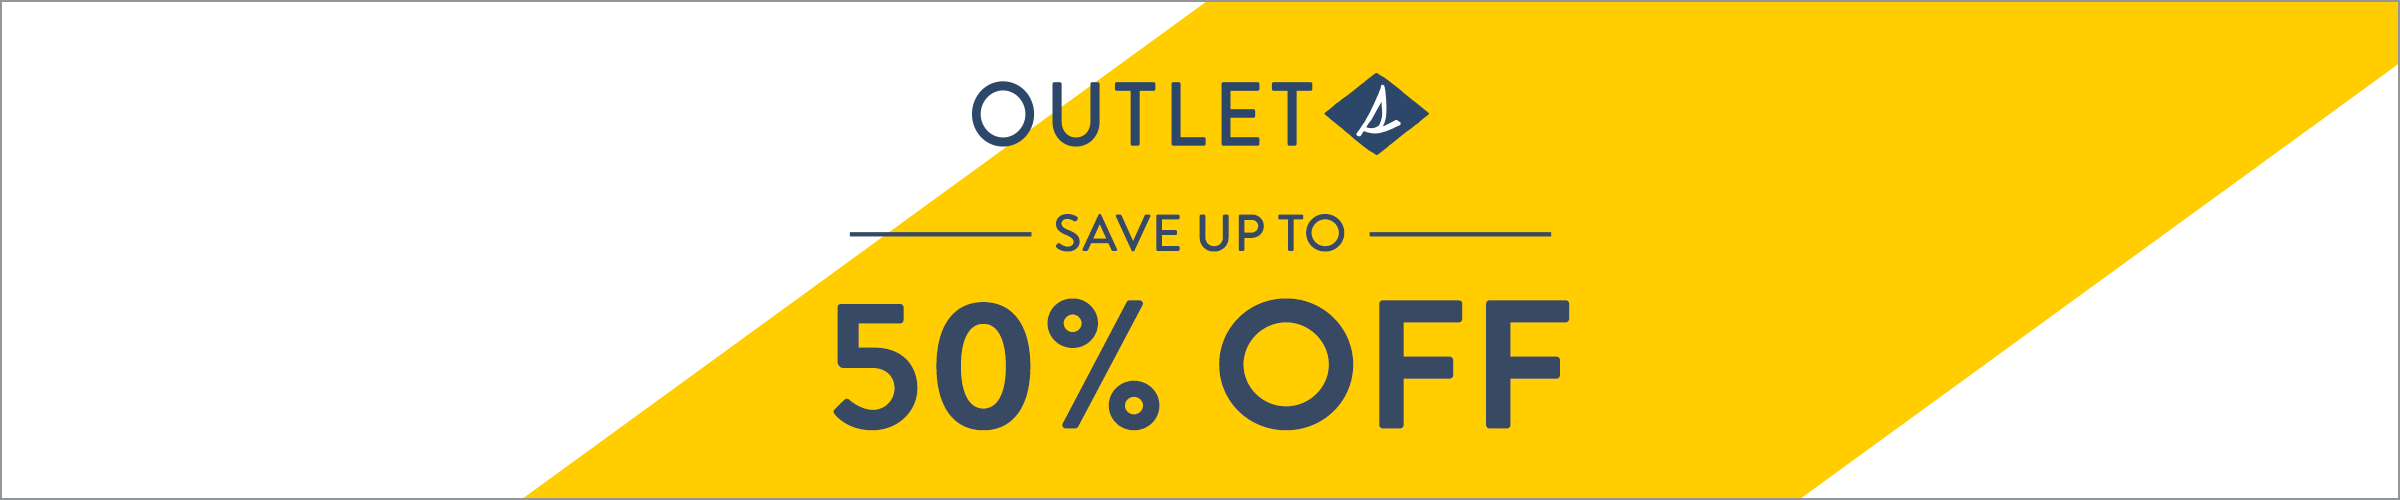 Sperry Outlet. Save up to 50% off.